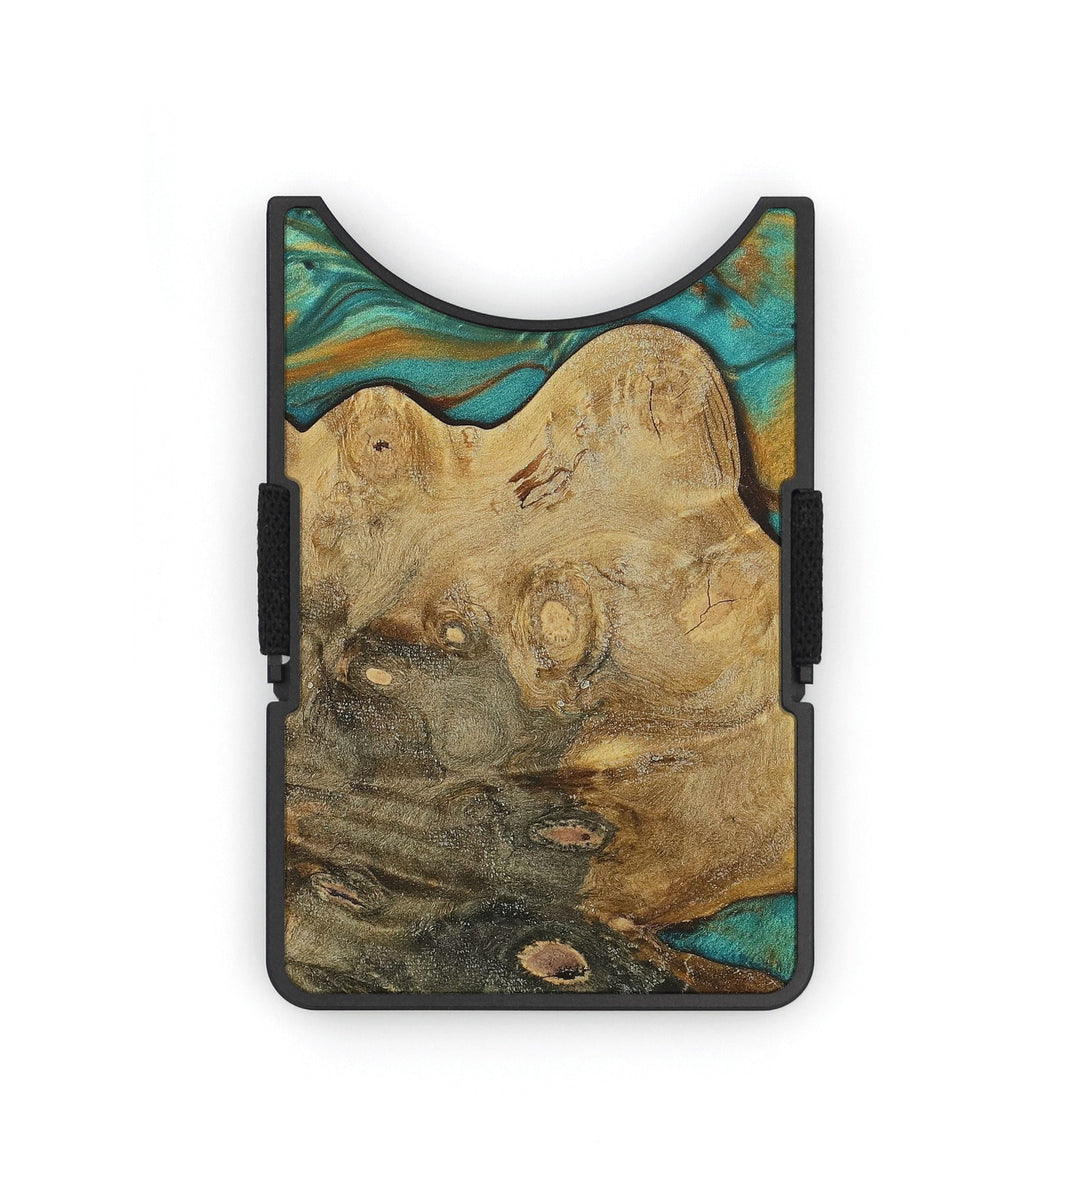 Alloy Wood+Resin Wallet - Raphaela (Teal & Gold, 353688)